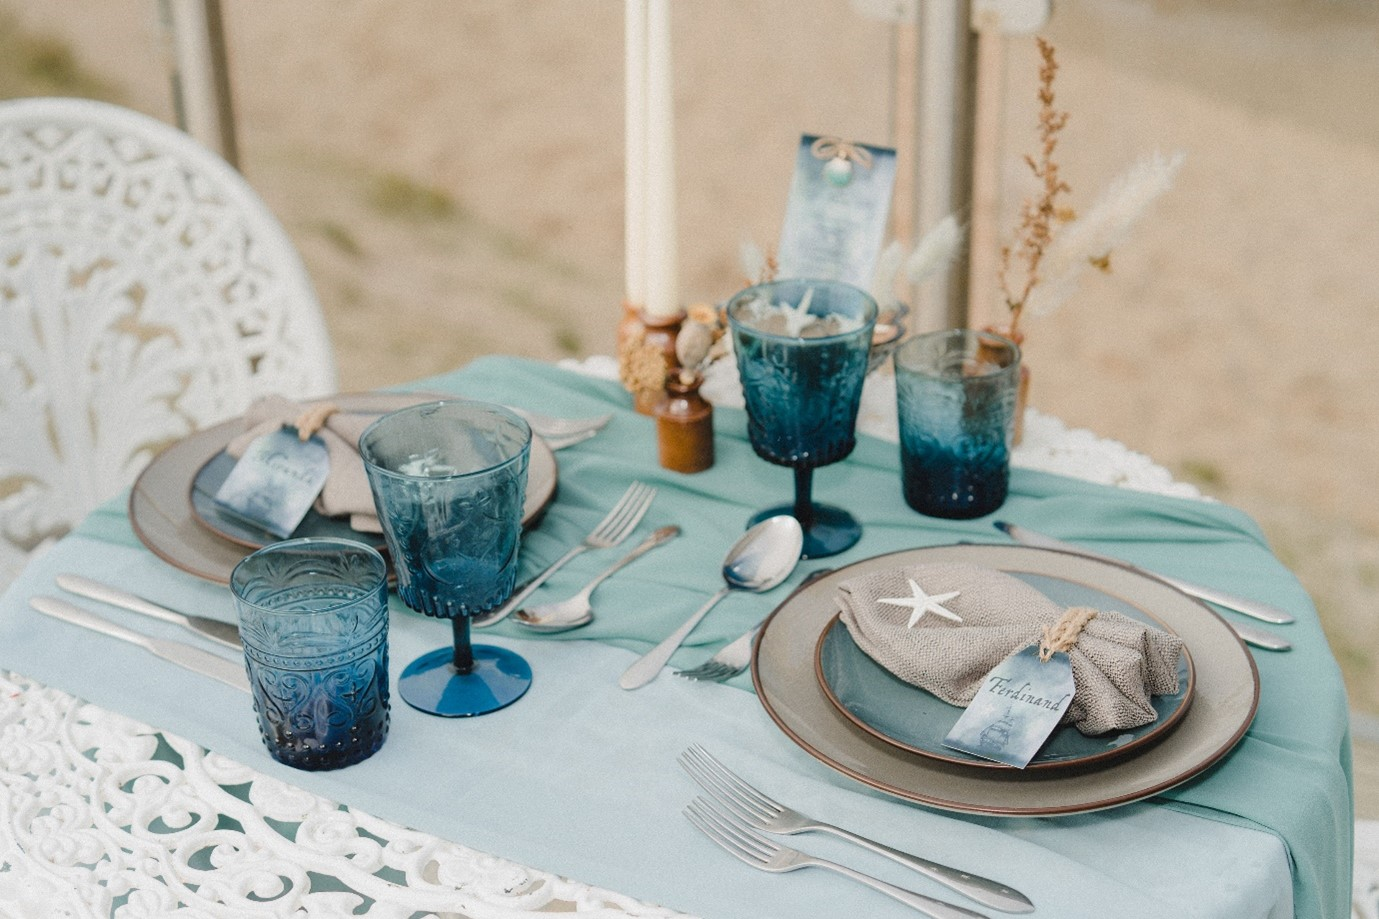 beach elopement - beach wedding - eco friendly wedding -tempest themed wedding - seaside wedding styling